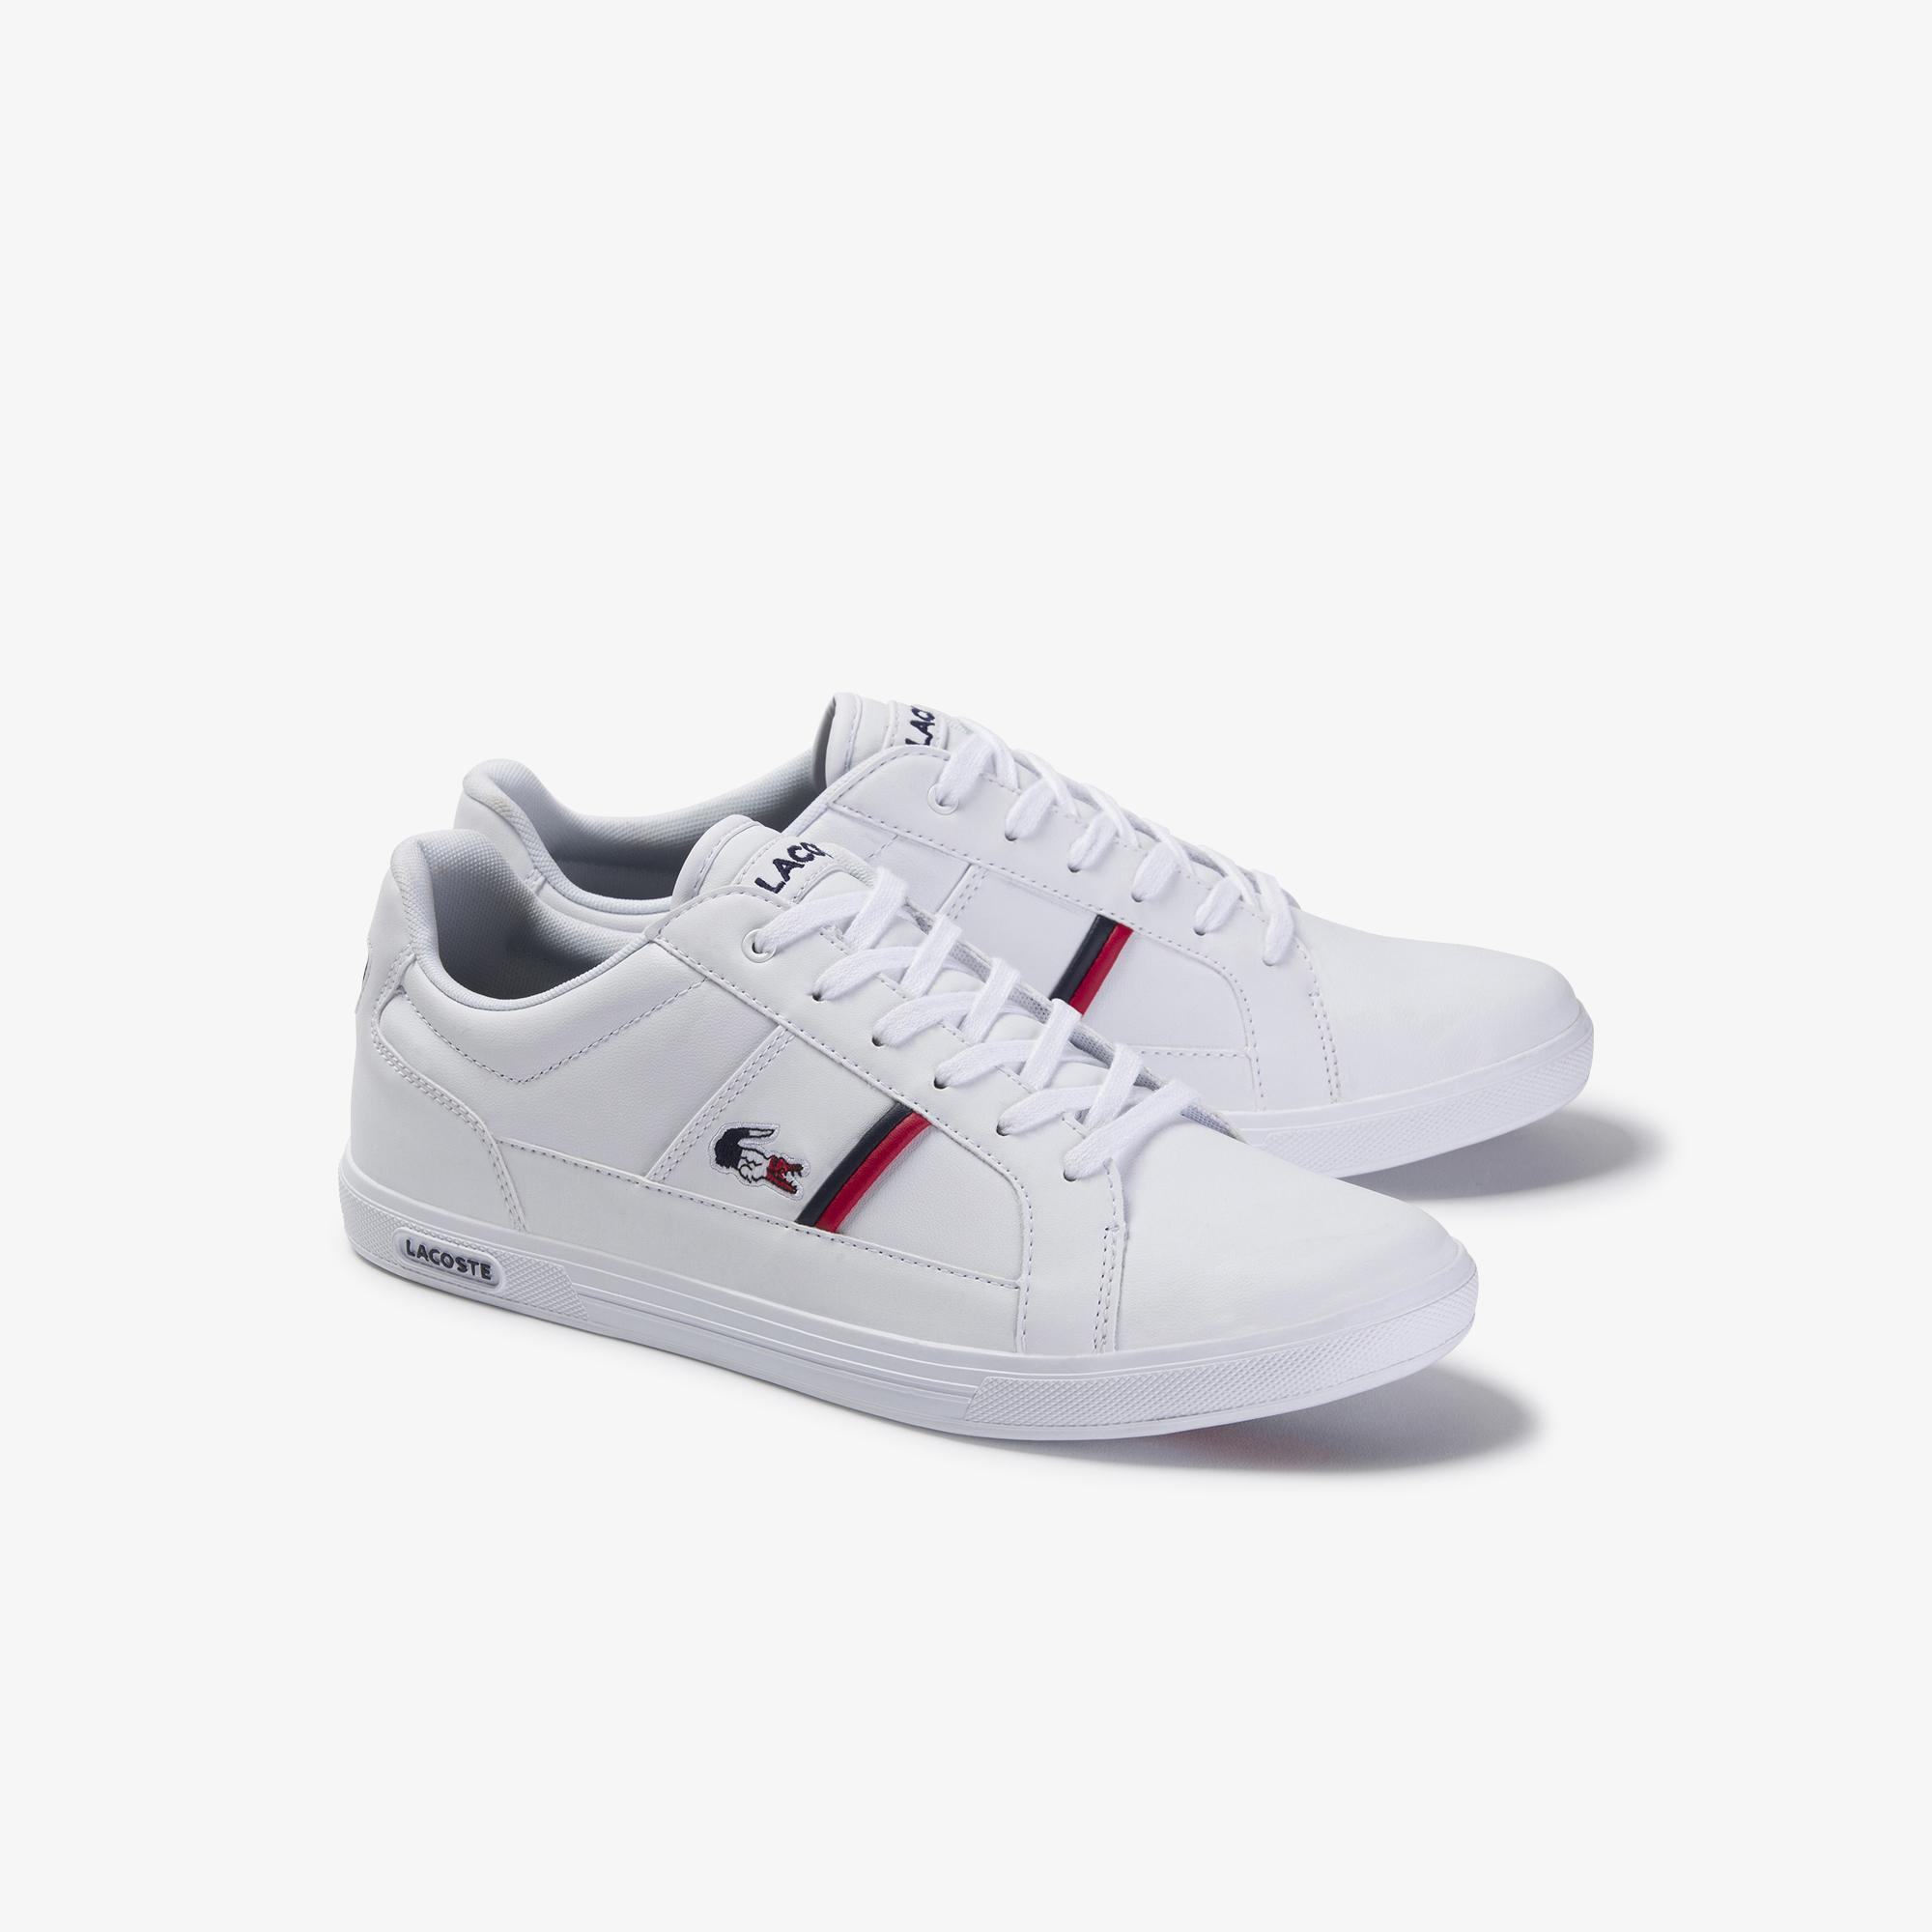 Lacoste Men's Europa Tricolour Leather Sneakers